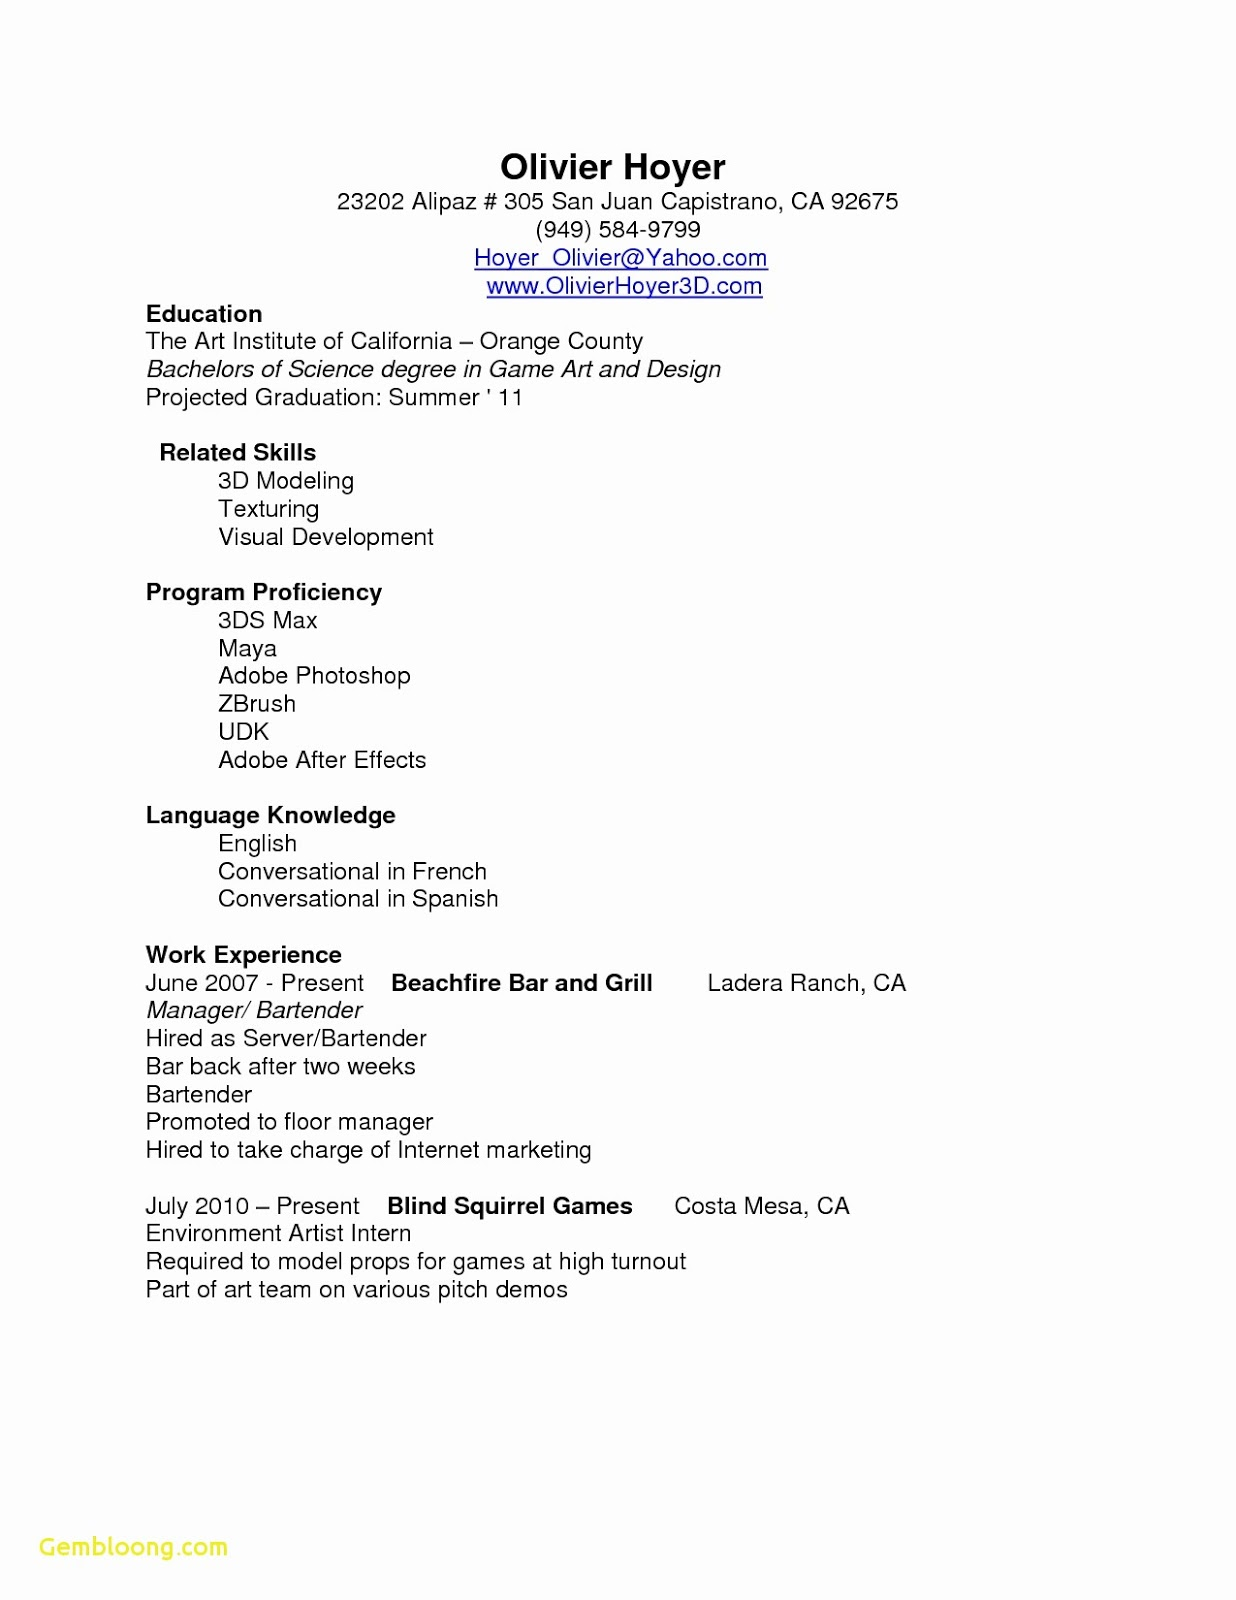 Barback Resume Sample 2019 Sample Resume For Barback 2020 barback resume sample barback resume example sample resume for barback barback resume objective example barback resume samples barback resume examples barback resume sample